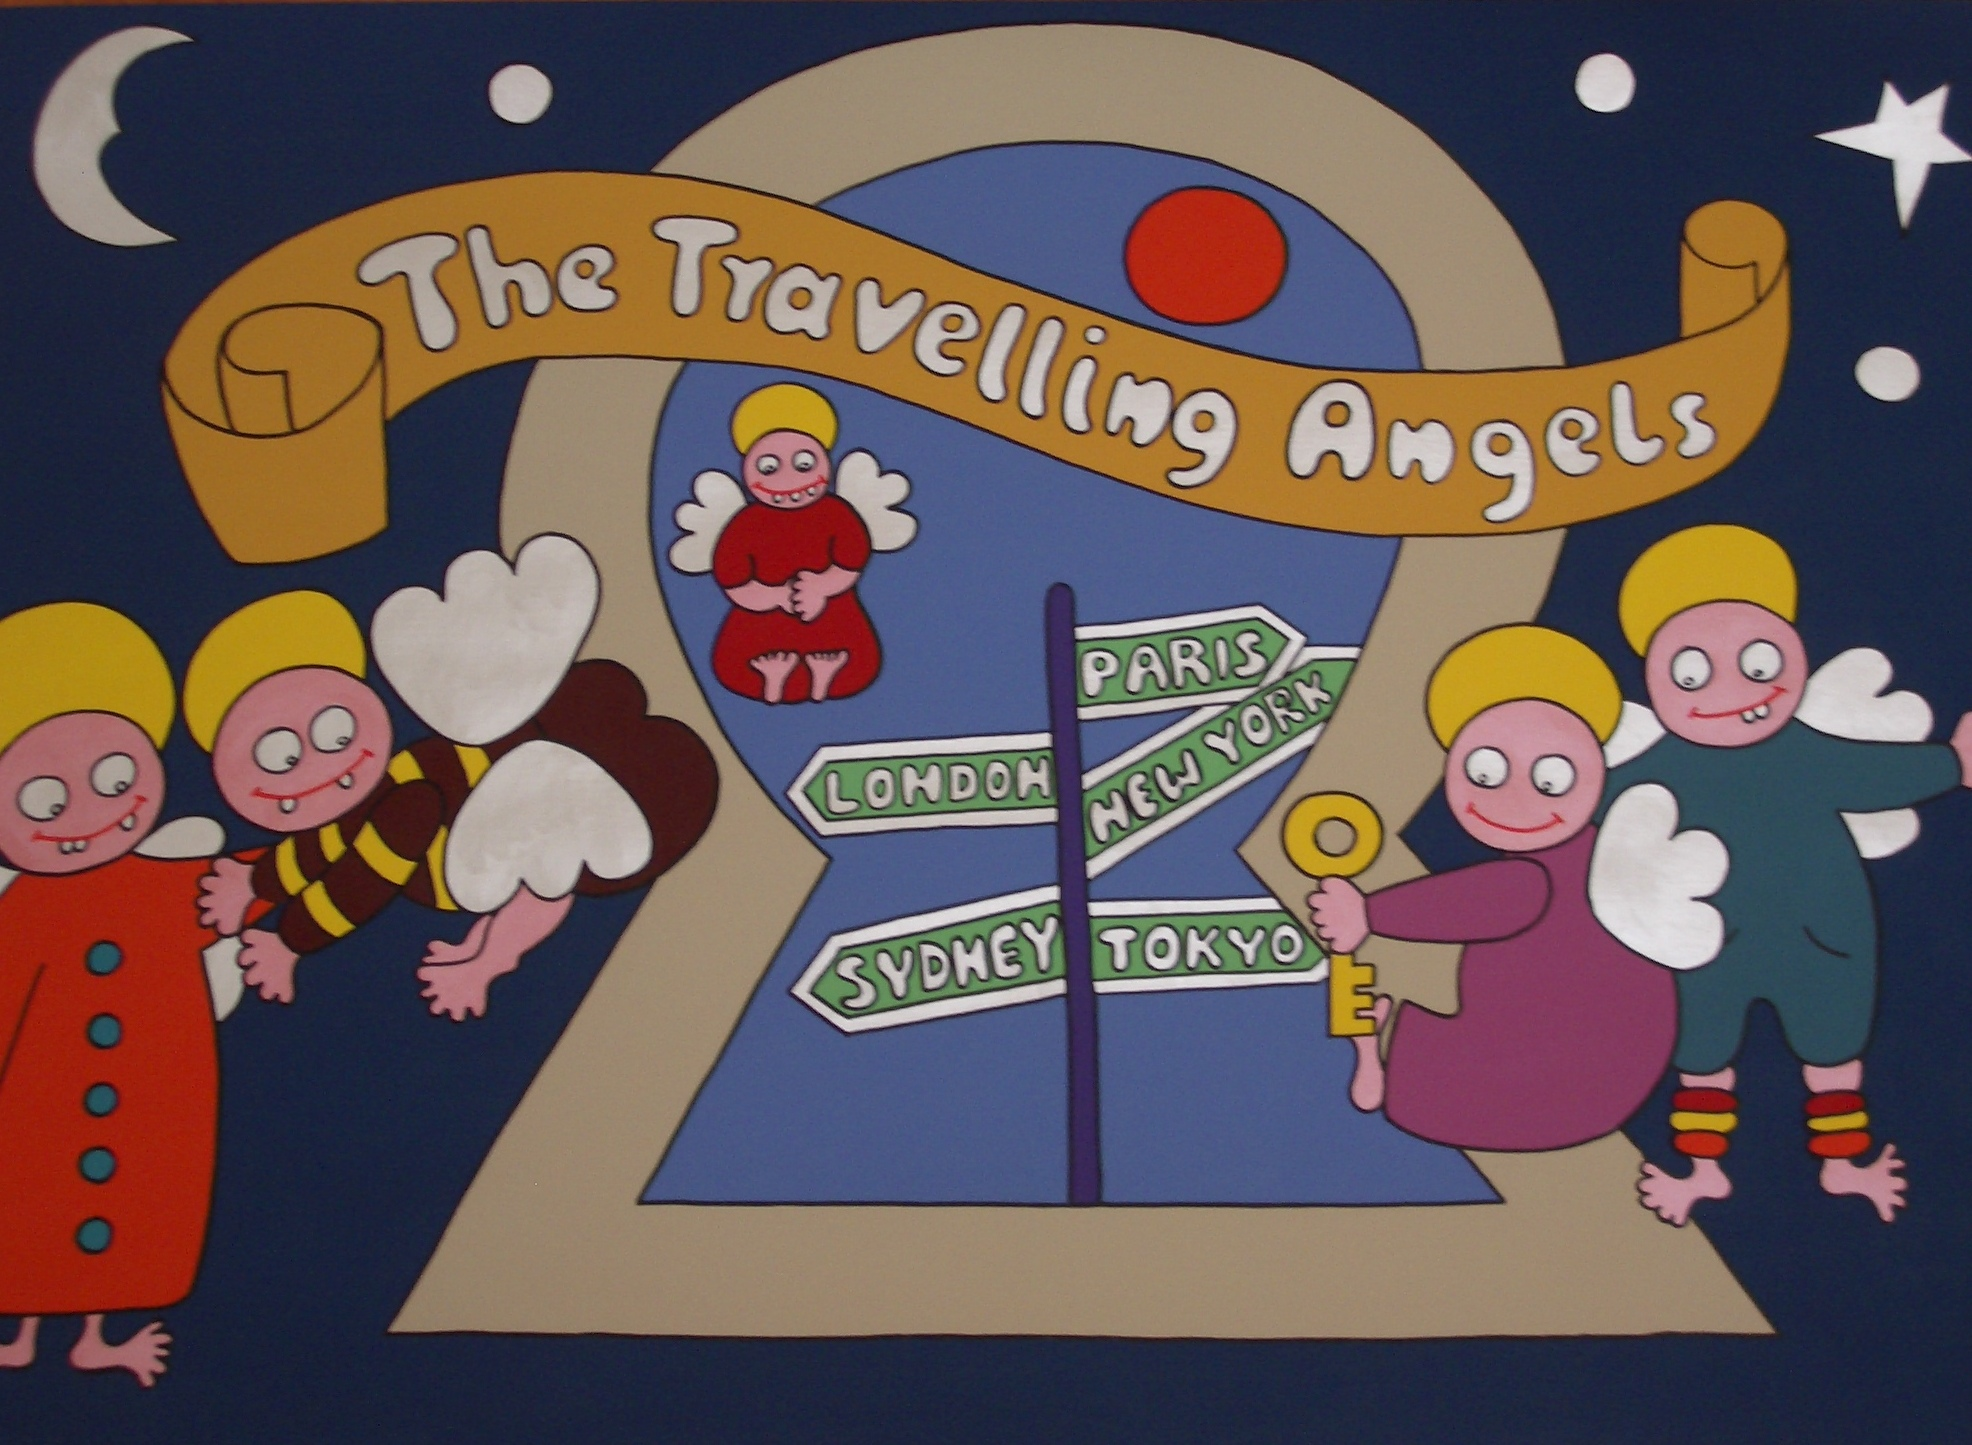 The Travelling Angels